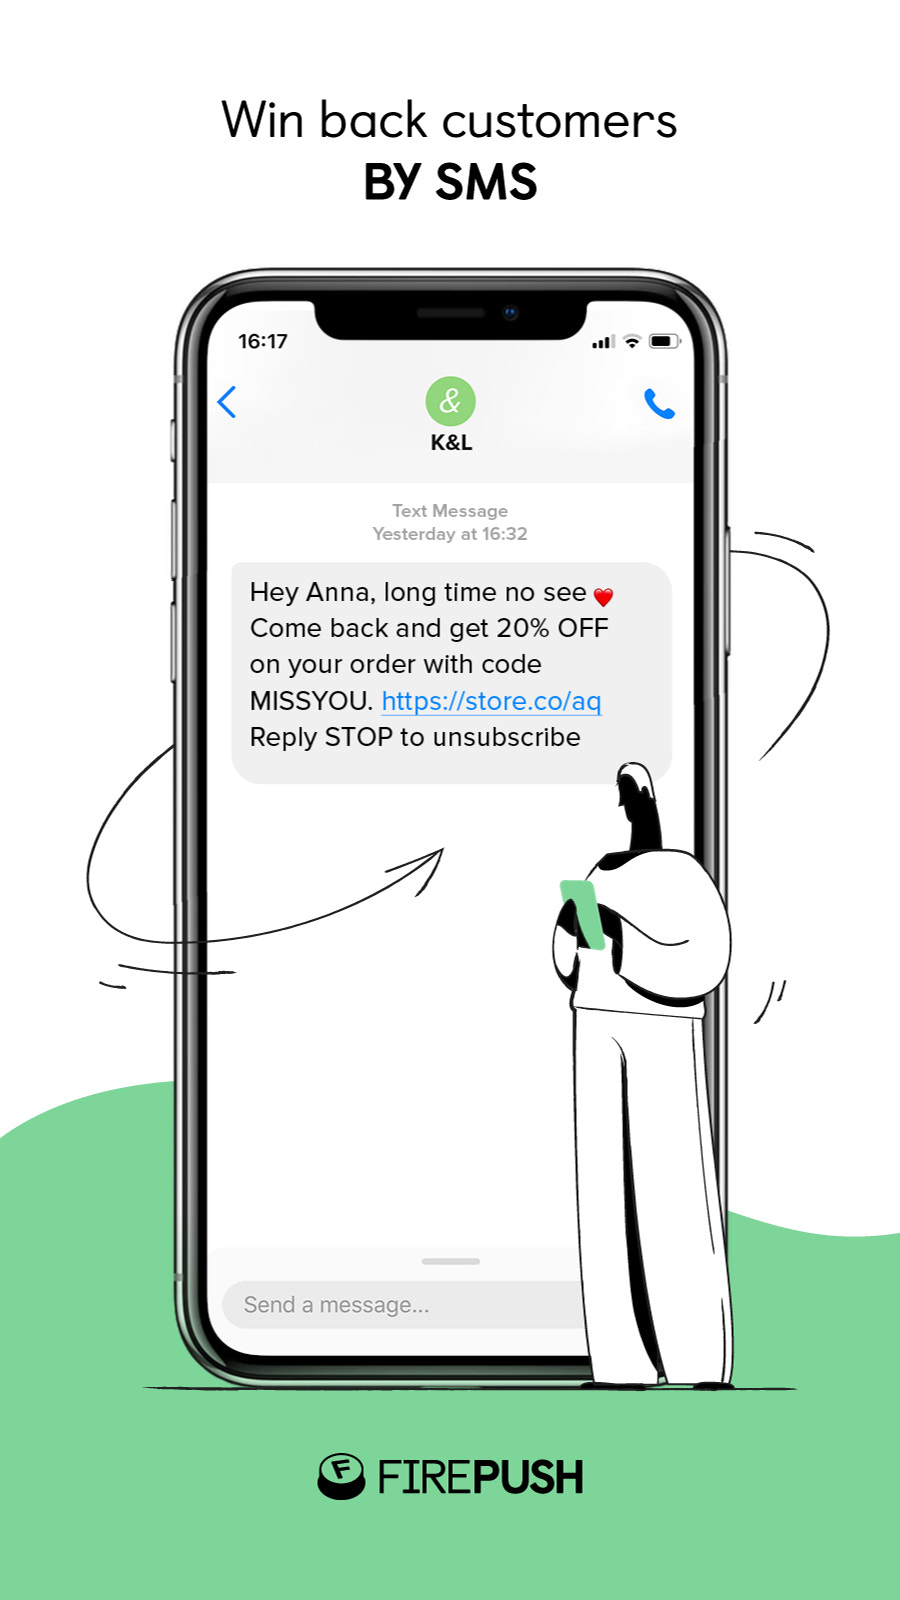 Win back customer SMS message for Shopify stores by Firepush